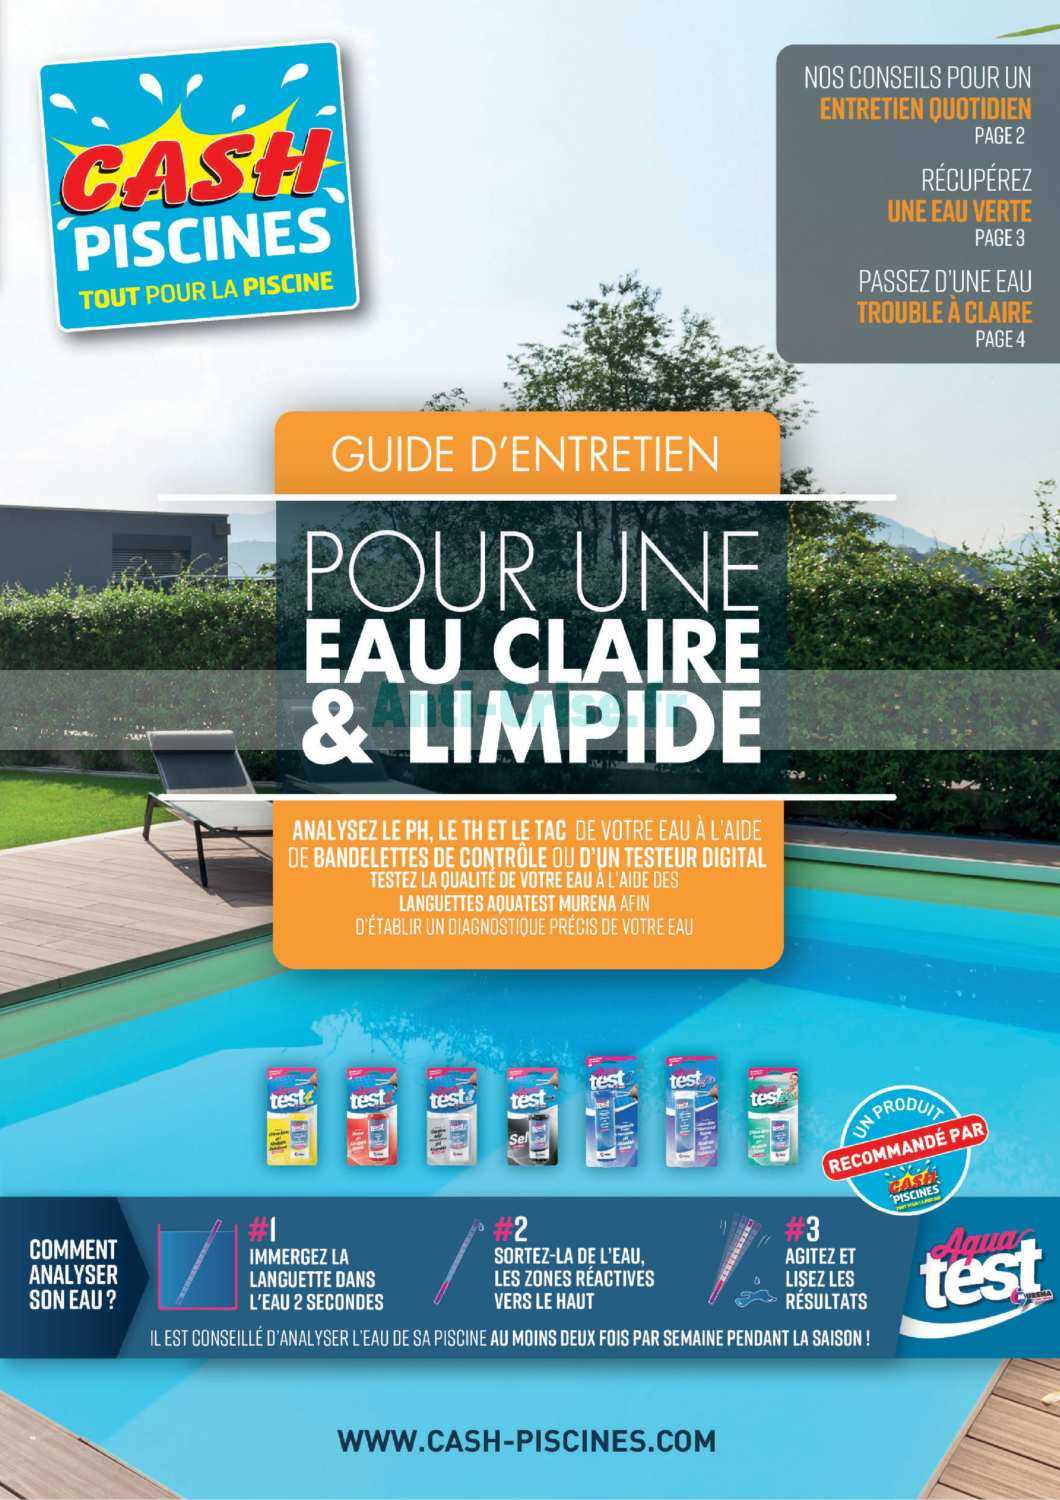 Catalogue Cash Piscines Du 14 Juillet Au 31 Décembre 2019 ... dedans Cash Piscine Catalogue